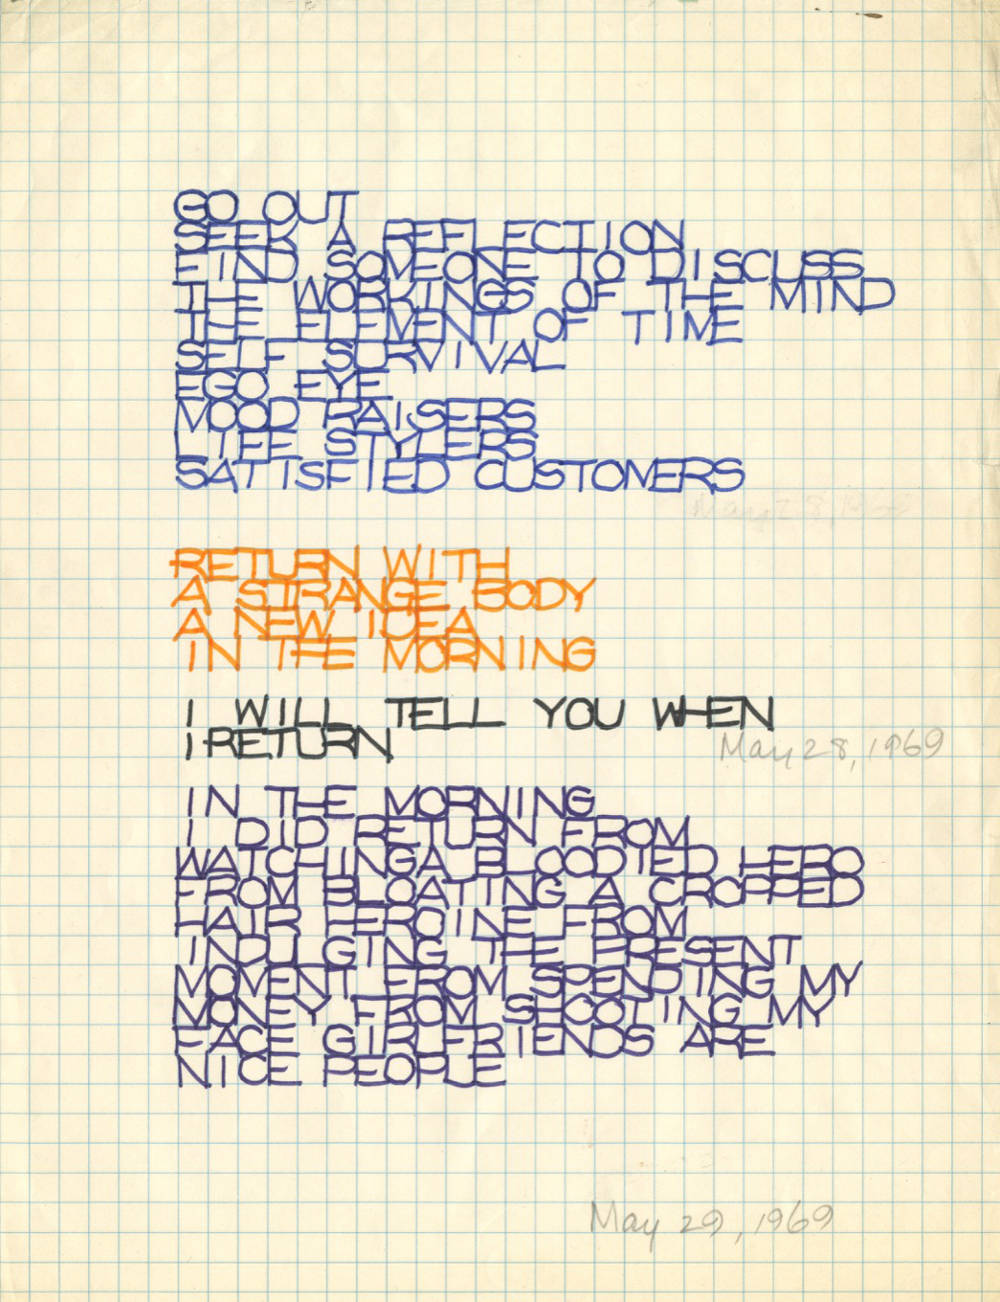 Rosemarie Castoro, Untitled (Concrete Poetry), 1969. Prismacolor marker and graphite on graph paper. Paper 27,9 x 21,6 cm (11 x 8,5 in) CCourtesy Anke Kempkes Art Advisory and Galerie Thaddaeus Ropac, London / Paris / Salzburg © The Estate of Rosemarie Castoro